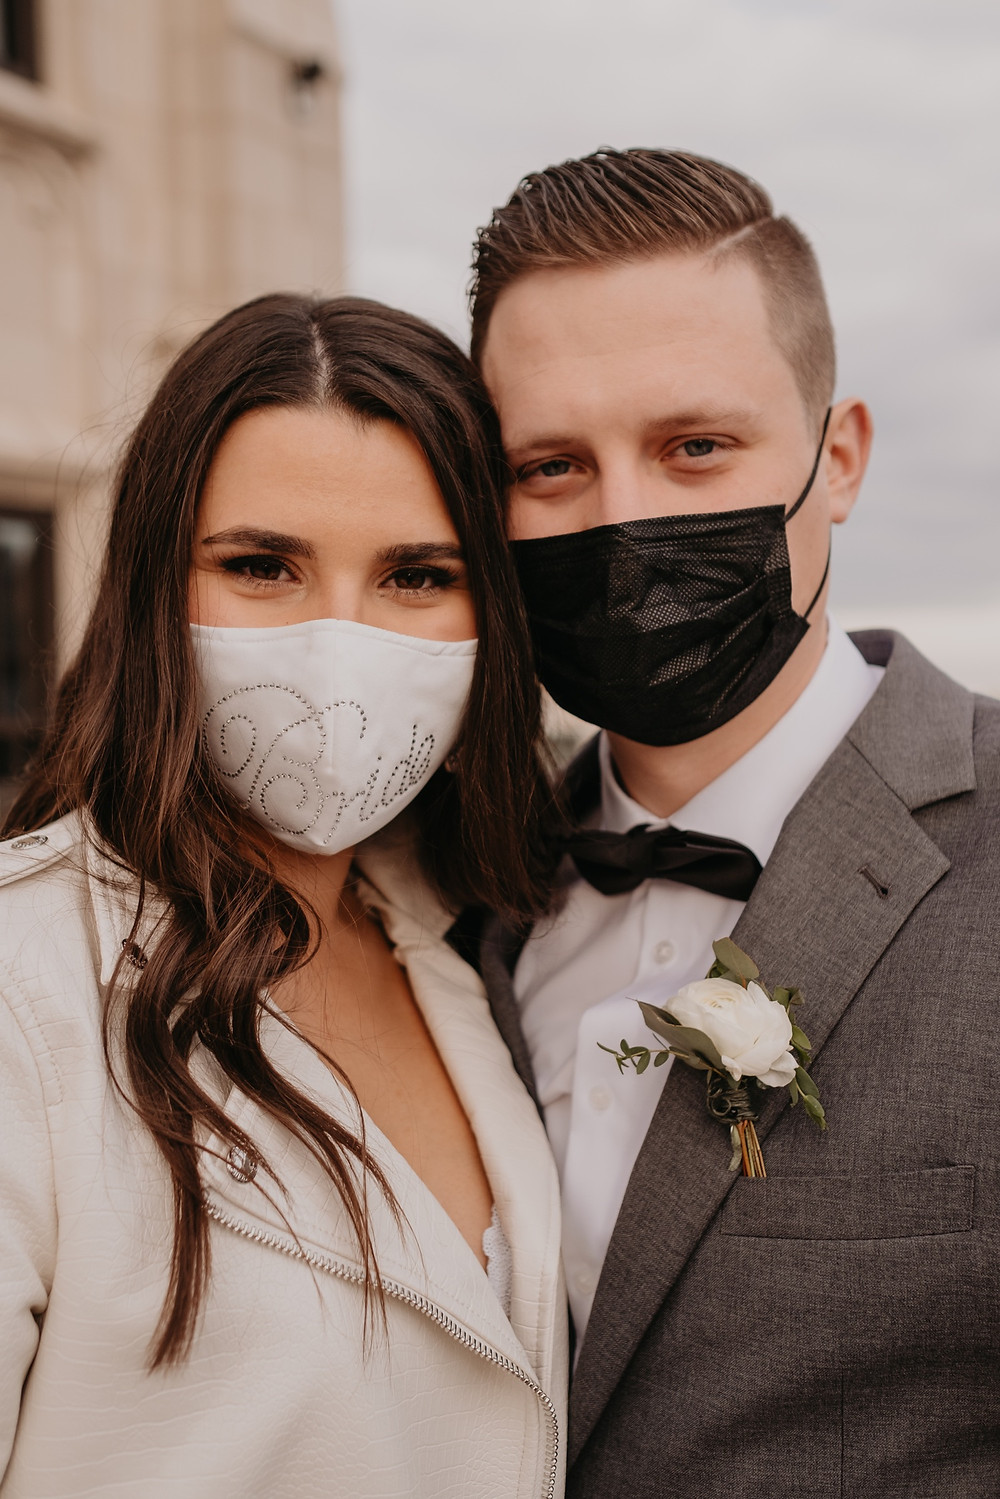 Bride and groom wearing face masks during 2021 pandemic wedding. Photographed by Nicole Leanne Photography.